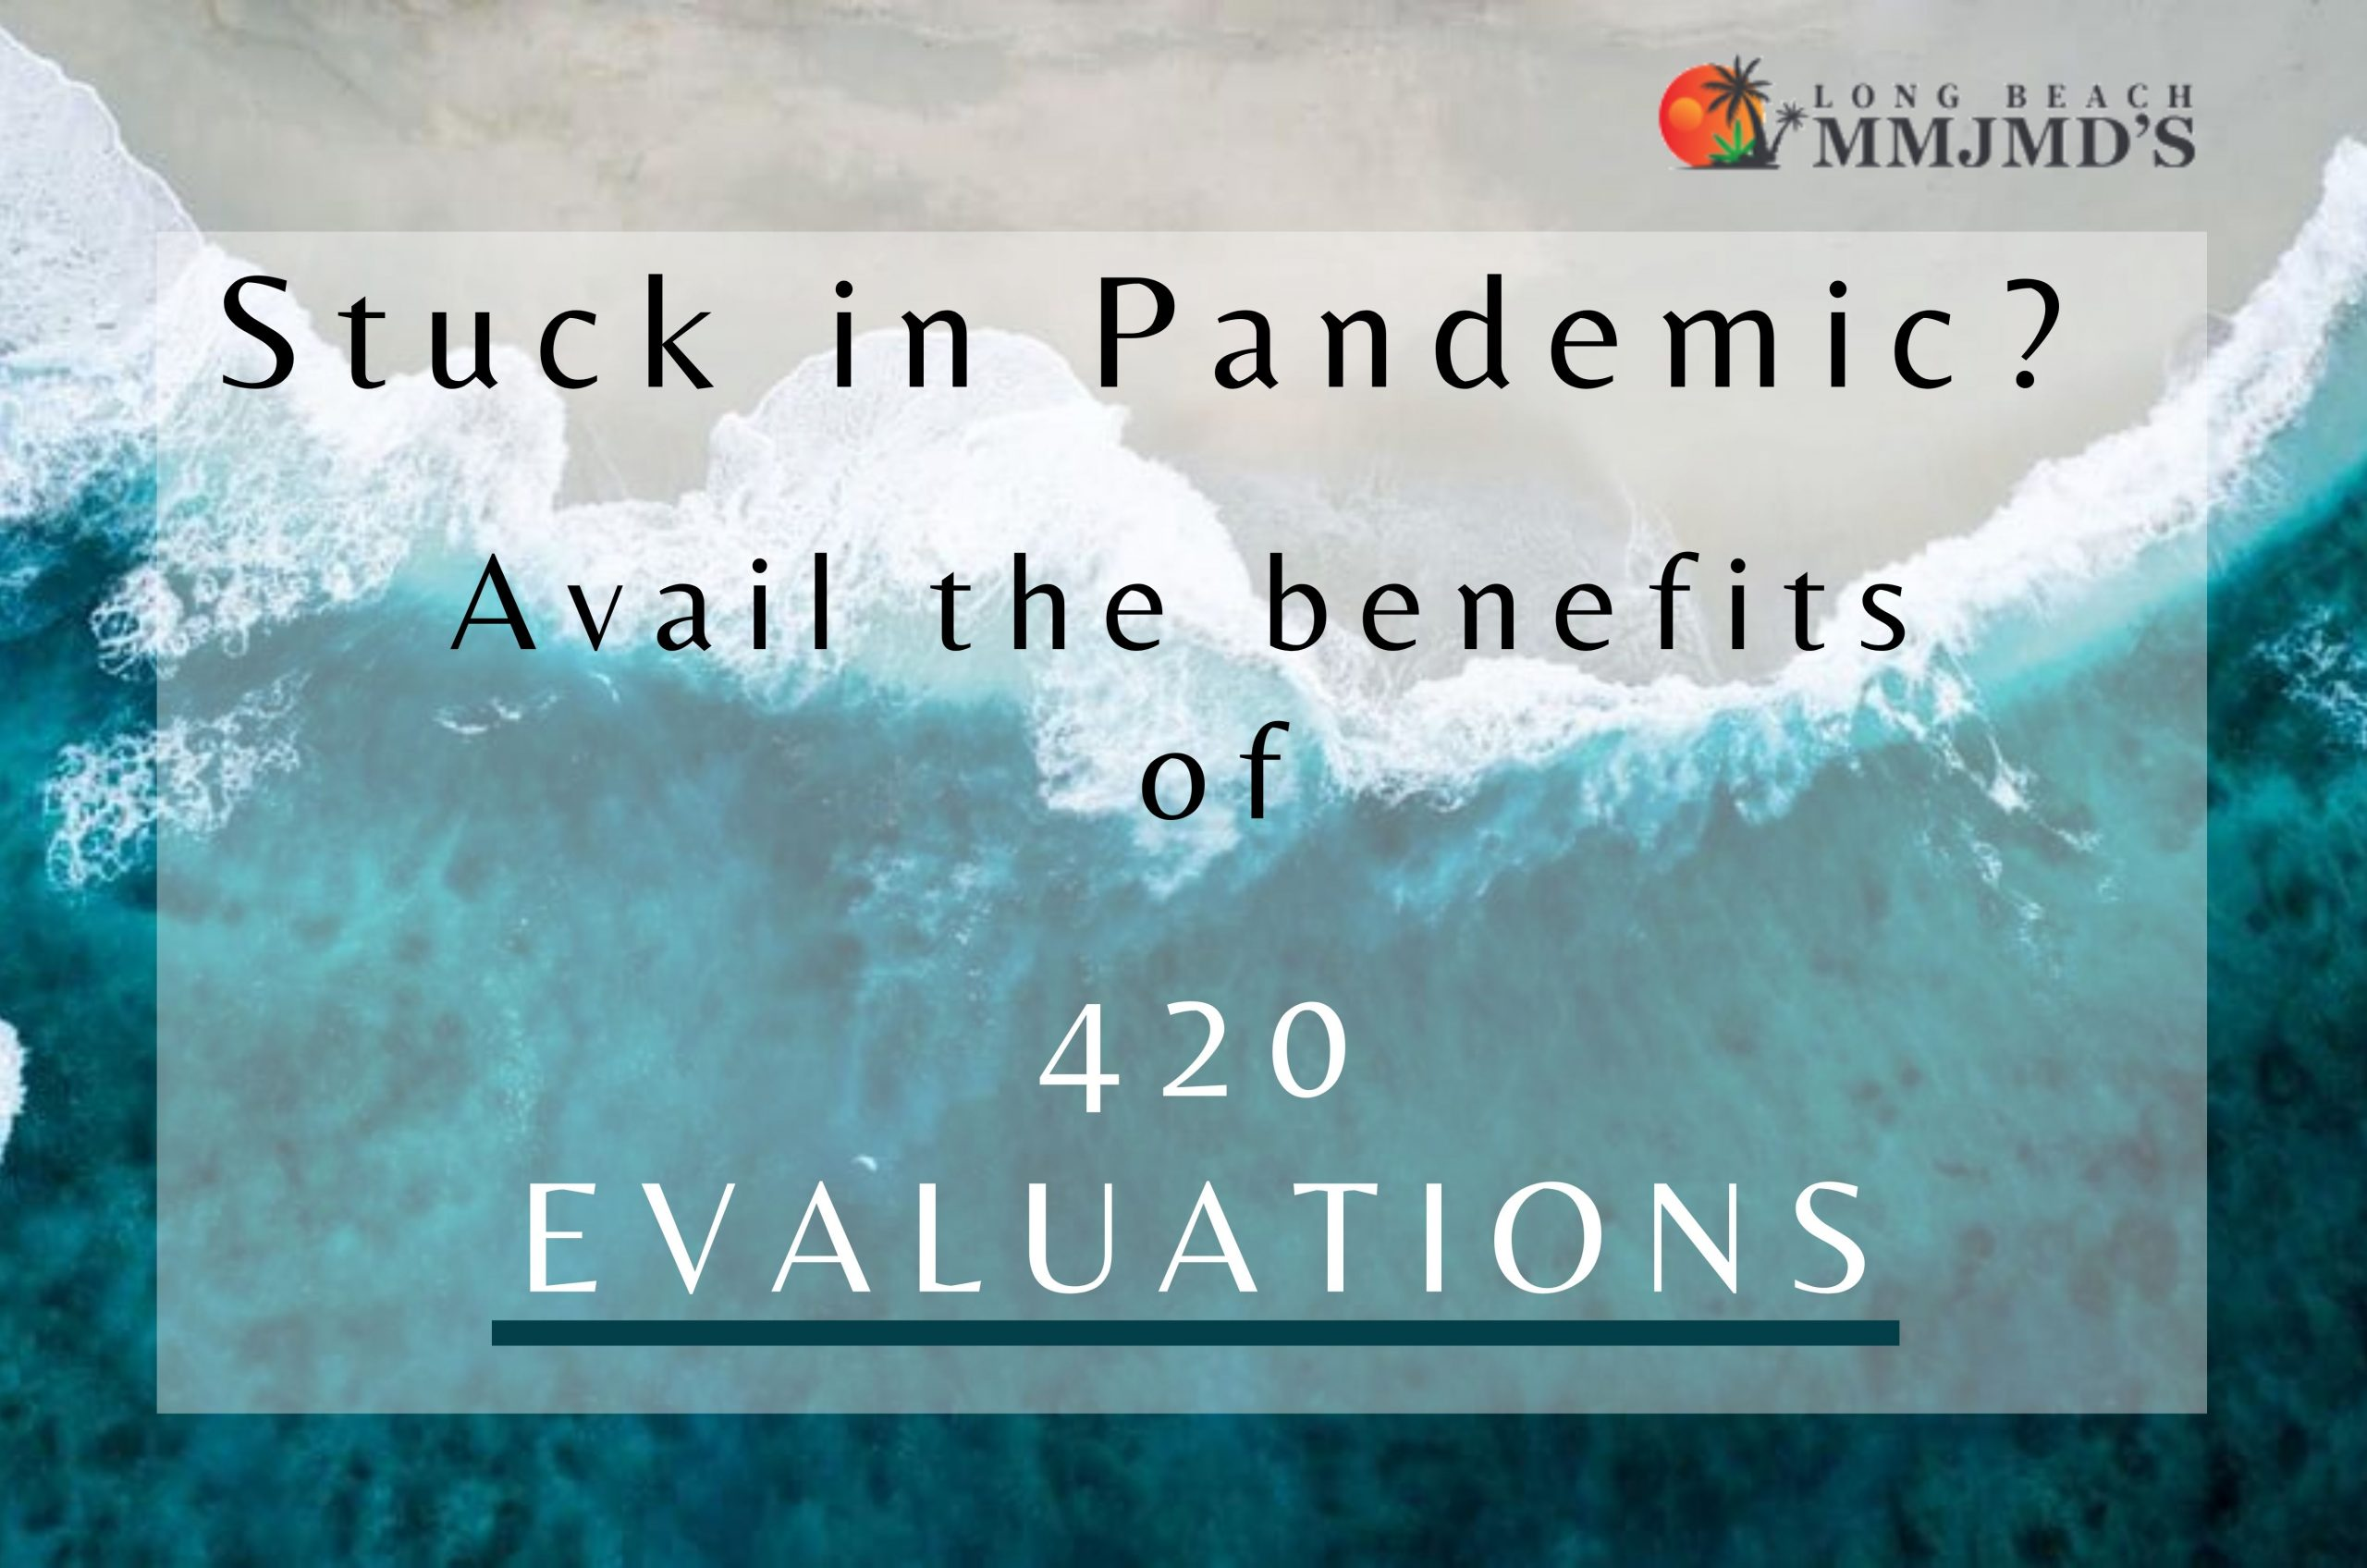 Avail benefits of 420 evaluations in pandemic